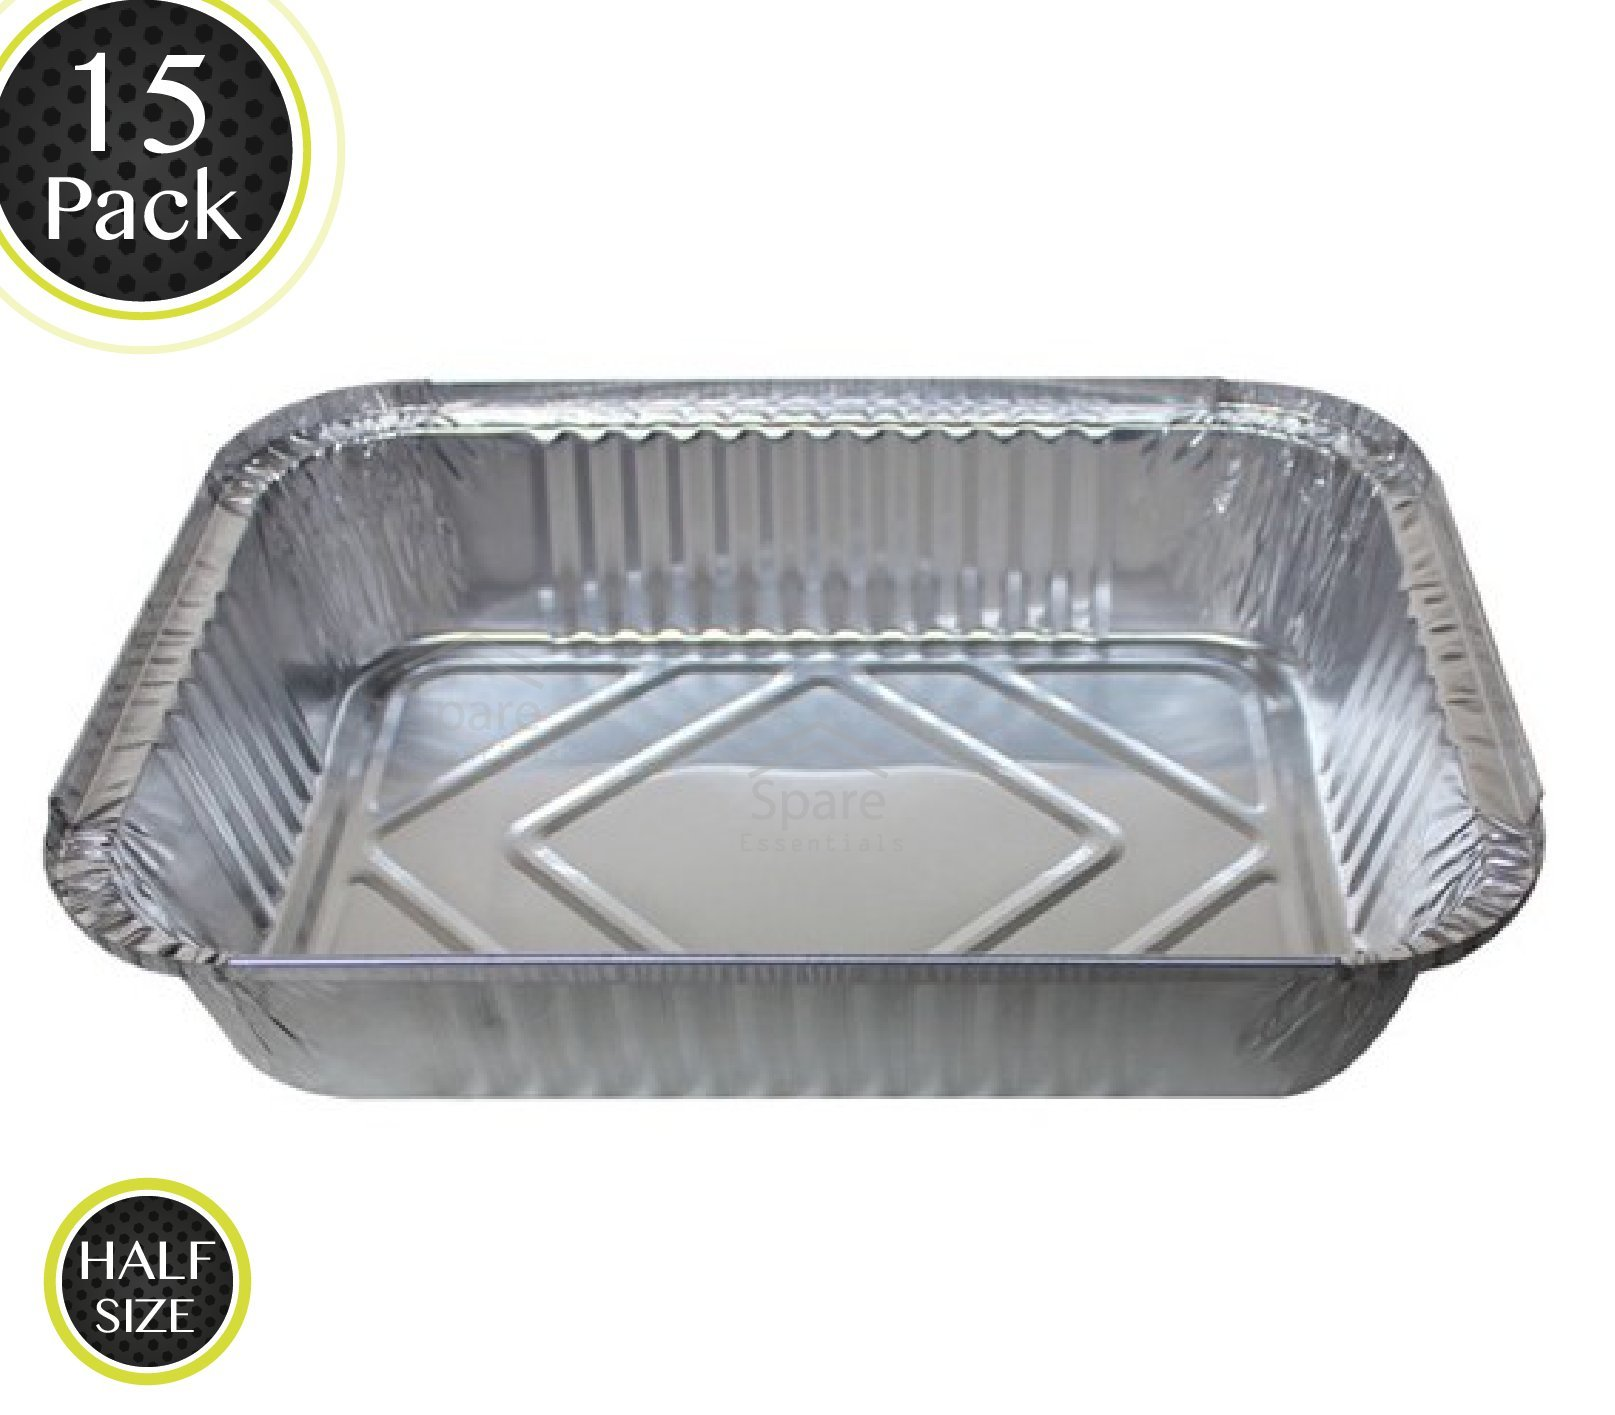 15 Pack - Durable Chafing Pans, Half Size Roasting Pans - Disposable Aluminum Foil Steam Table Deep Pans, Buffet Pans Size - 10'' x 13'' by Spare Essentials